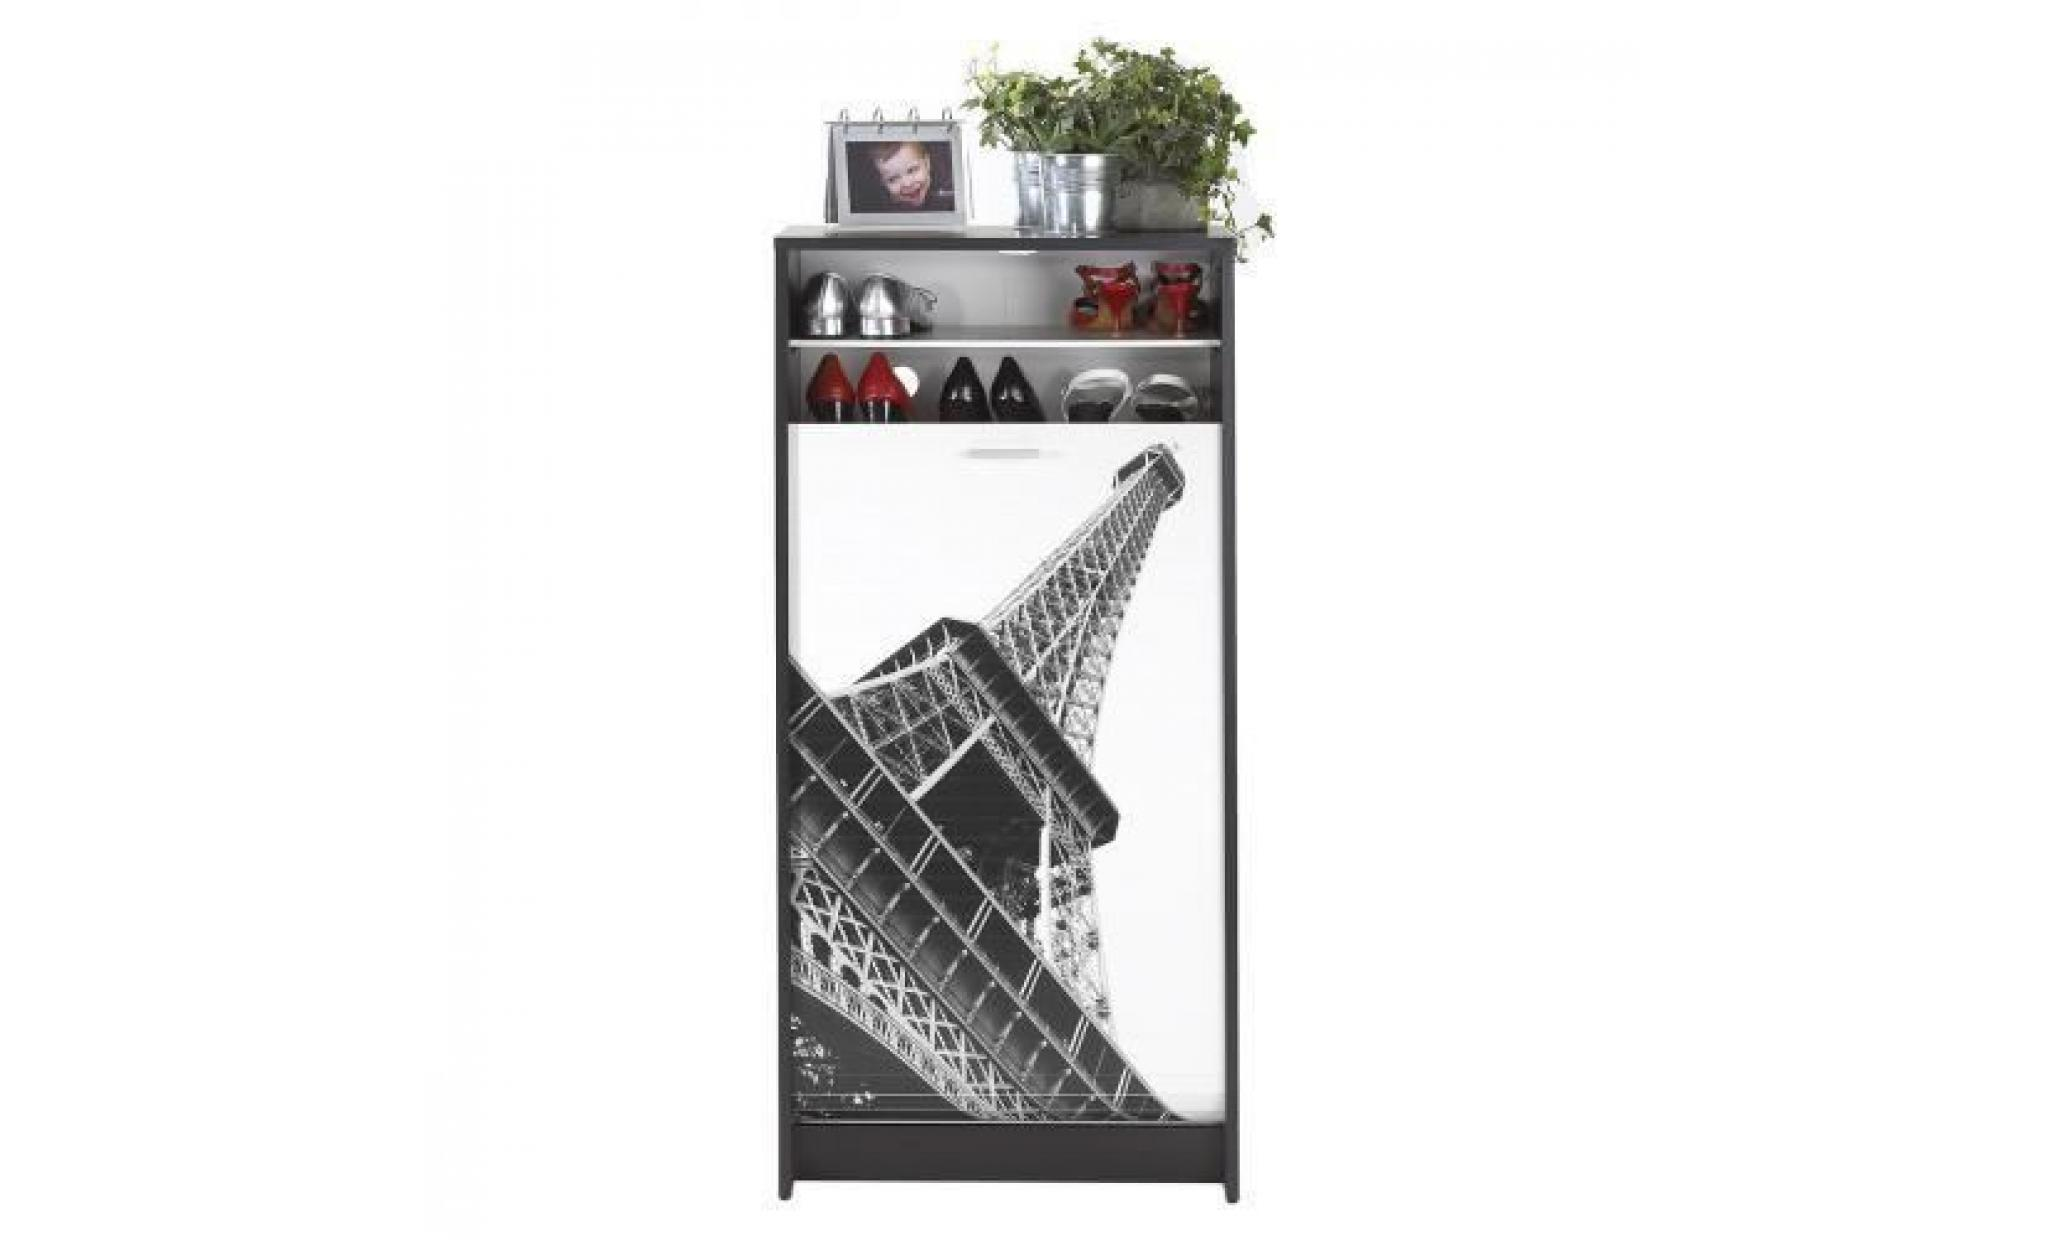 meuble a chaussures shoot paris noir achat vente meuble chaussure pas cher couleur et. Black Bedroom Furniture Sets. Home Design Ideas